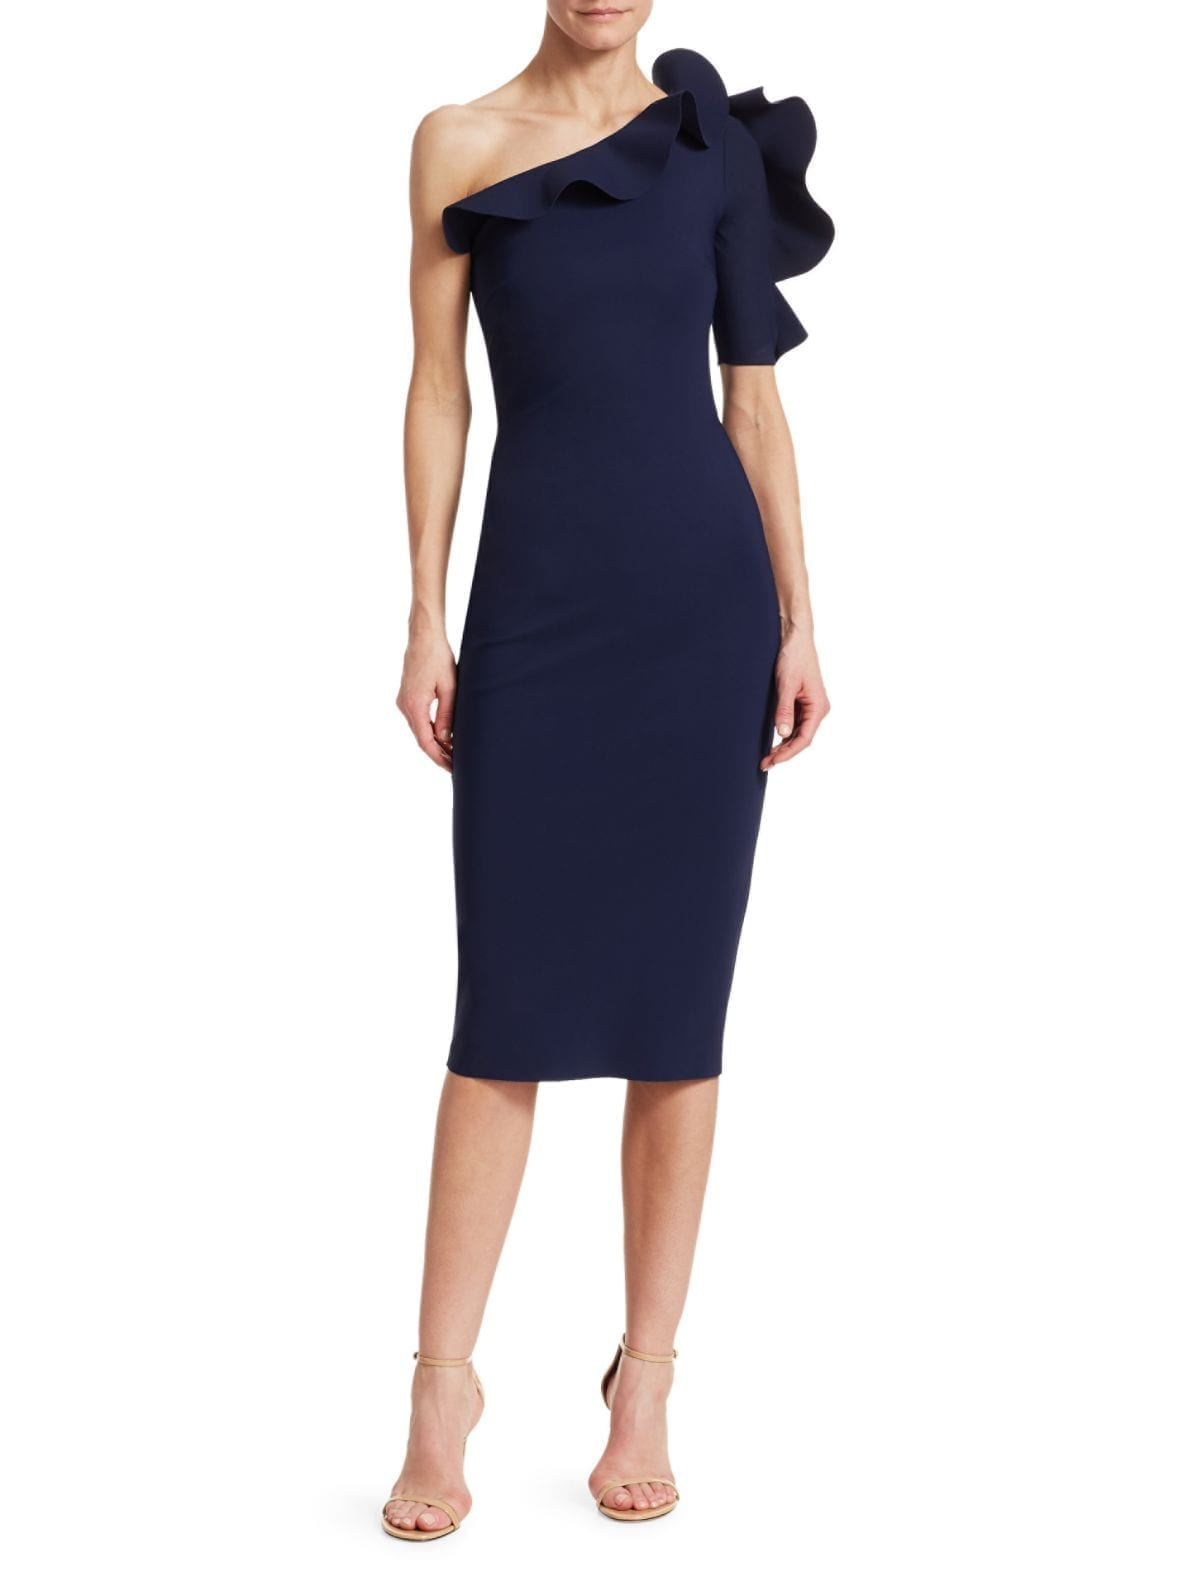 CHIARA BONI LA PETITE ROBE Aleece One-Shoulder Ruffle Sheath Navy Dress